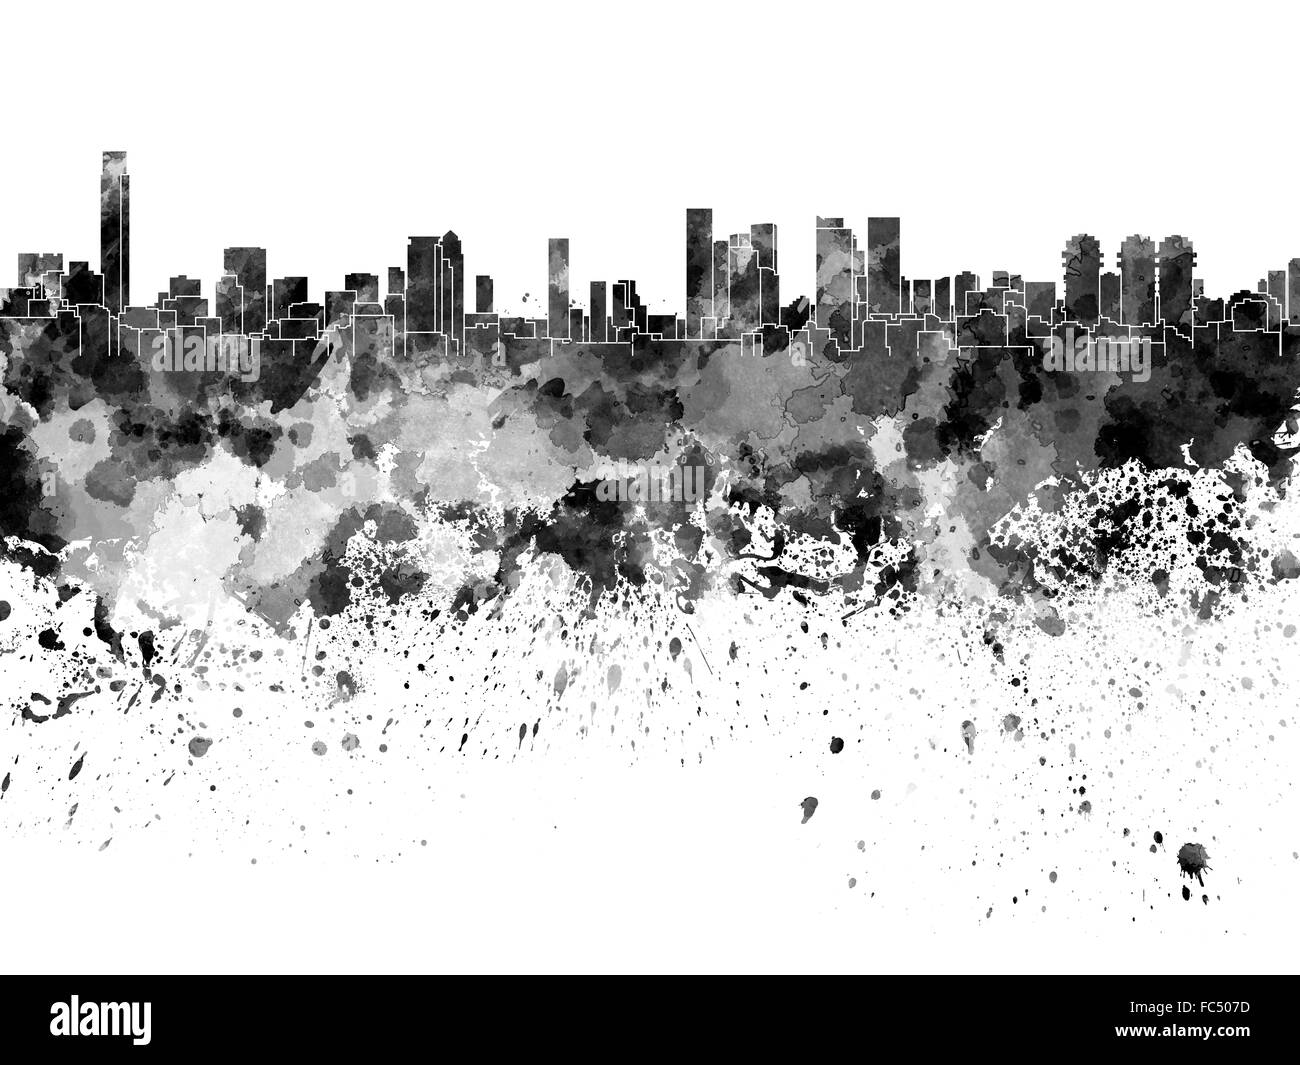 Tel Aviv skyline in black watercolor on white background - Stock Image